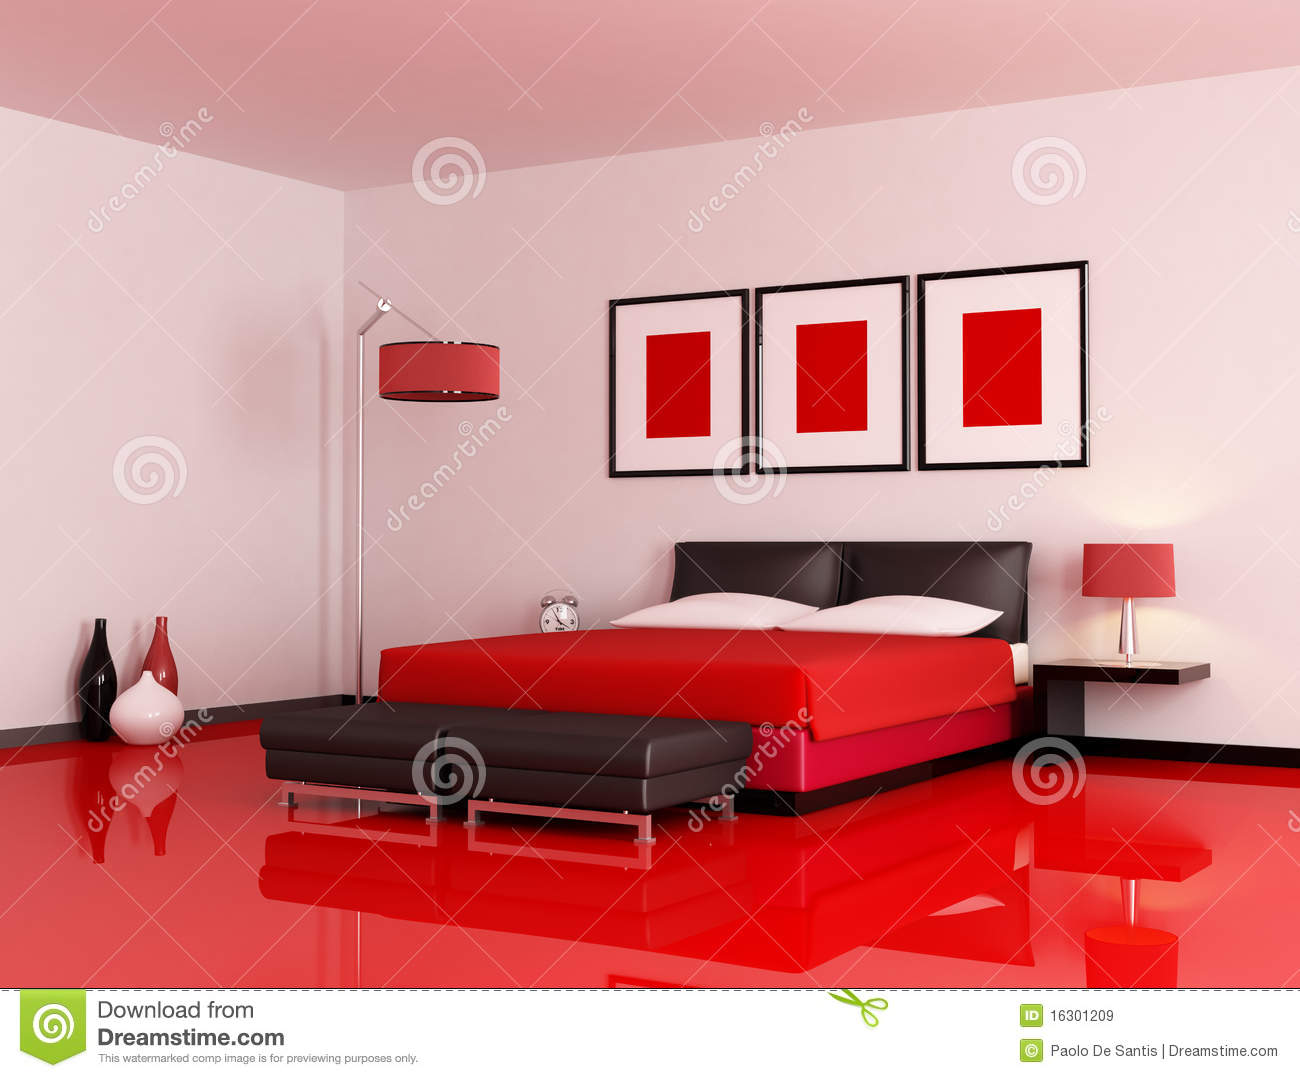 cuisine rouge et blanche. Black Bedroom Furniture Sets. Home Design Ideas